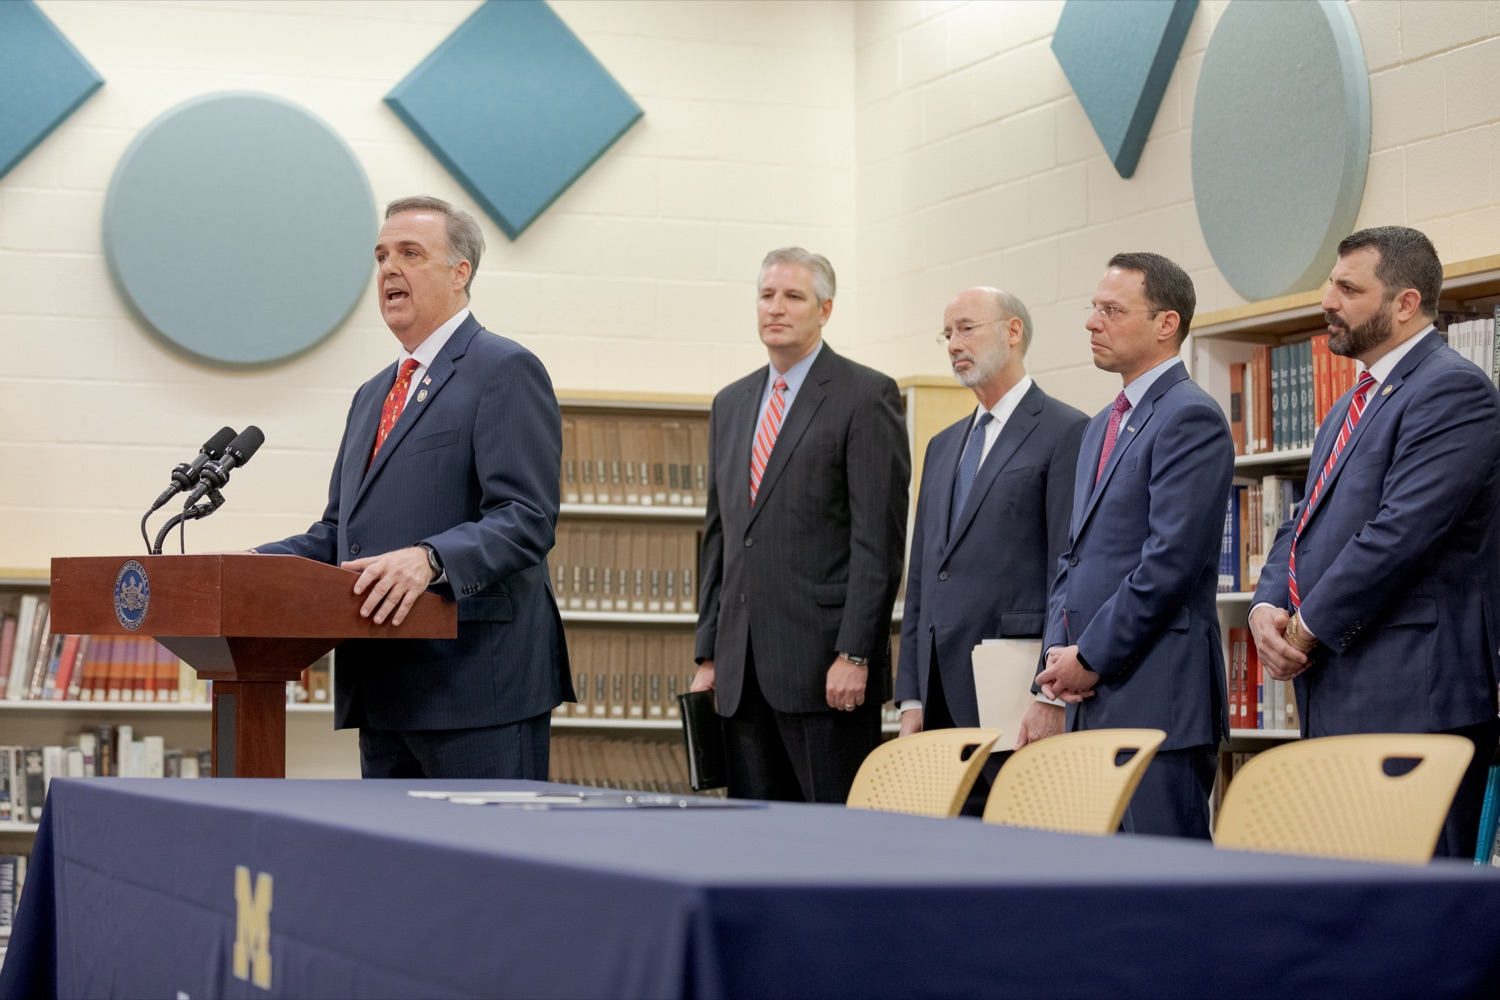 """<a href=""""http://filesource.abacast.com/commonwealthofpa/photo/17628_GOV_AG_Bill_Signing_NK_019.JPG"""" target=""""_blank"""">⇣Download Photo<br></a>State Rep. Jim Gregory speaks before signing a package of three bills, which mirror three of the Grand Jurys recommendations on addressing the statute of limitations for victims of child sexual abuse, inside Muhlenberg High School on Tuesday, November 26, 2019."""